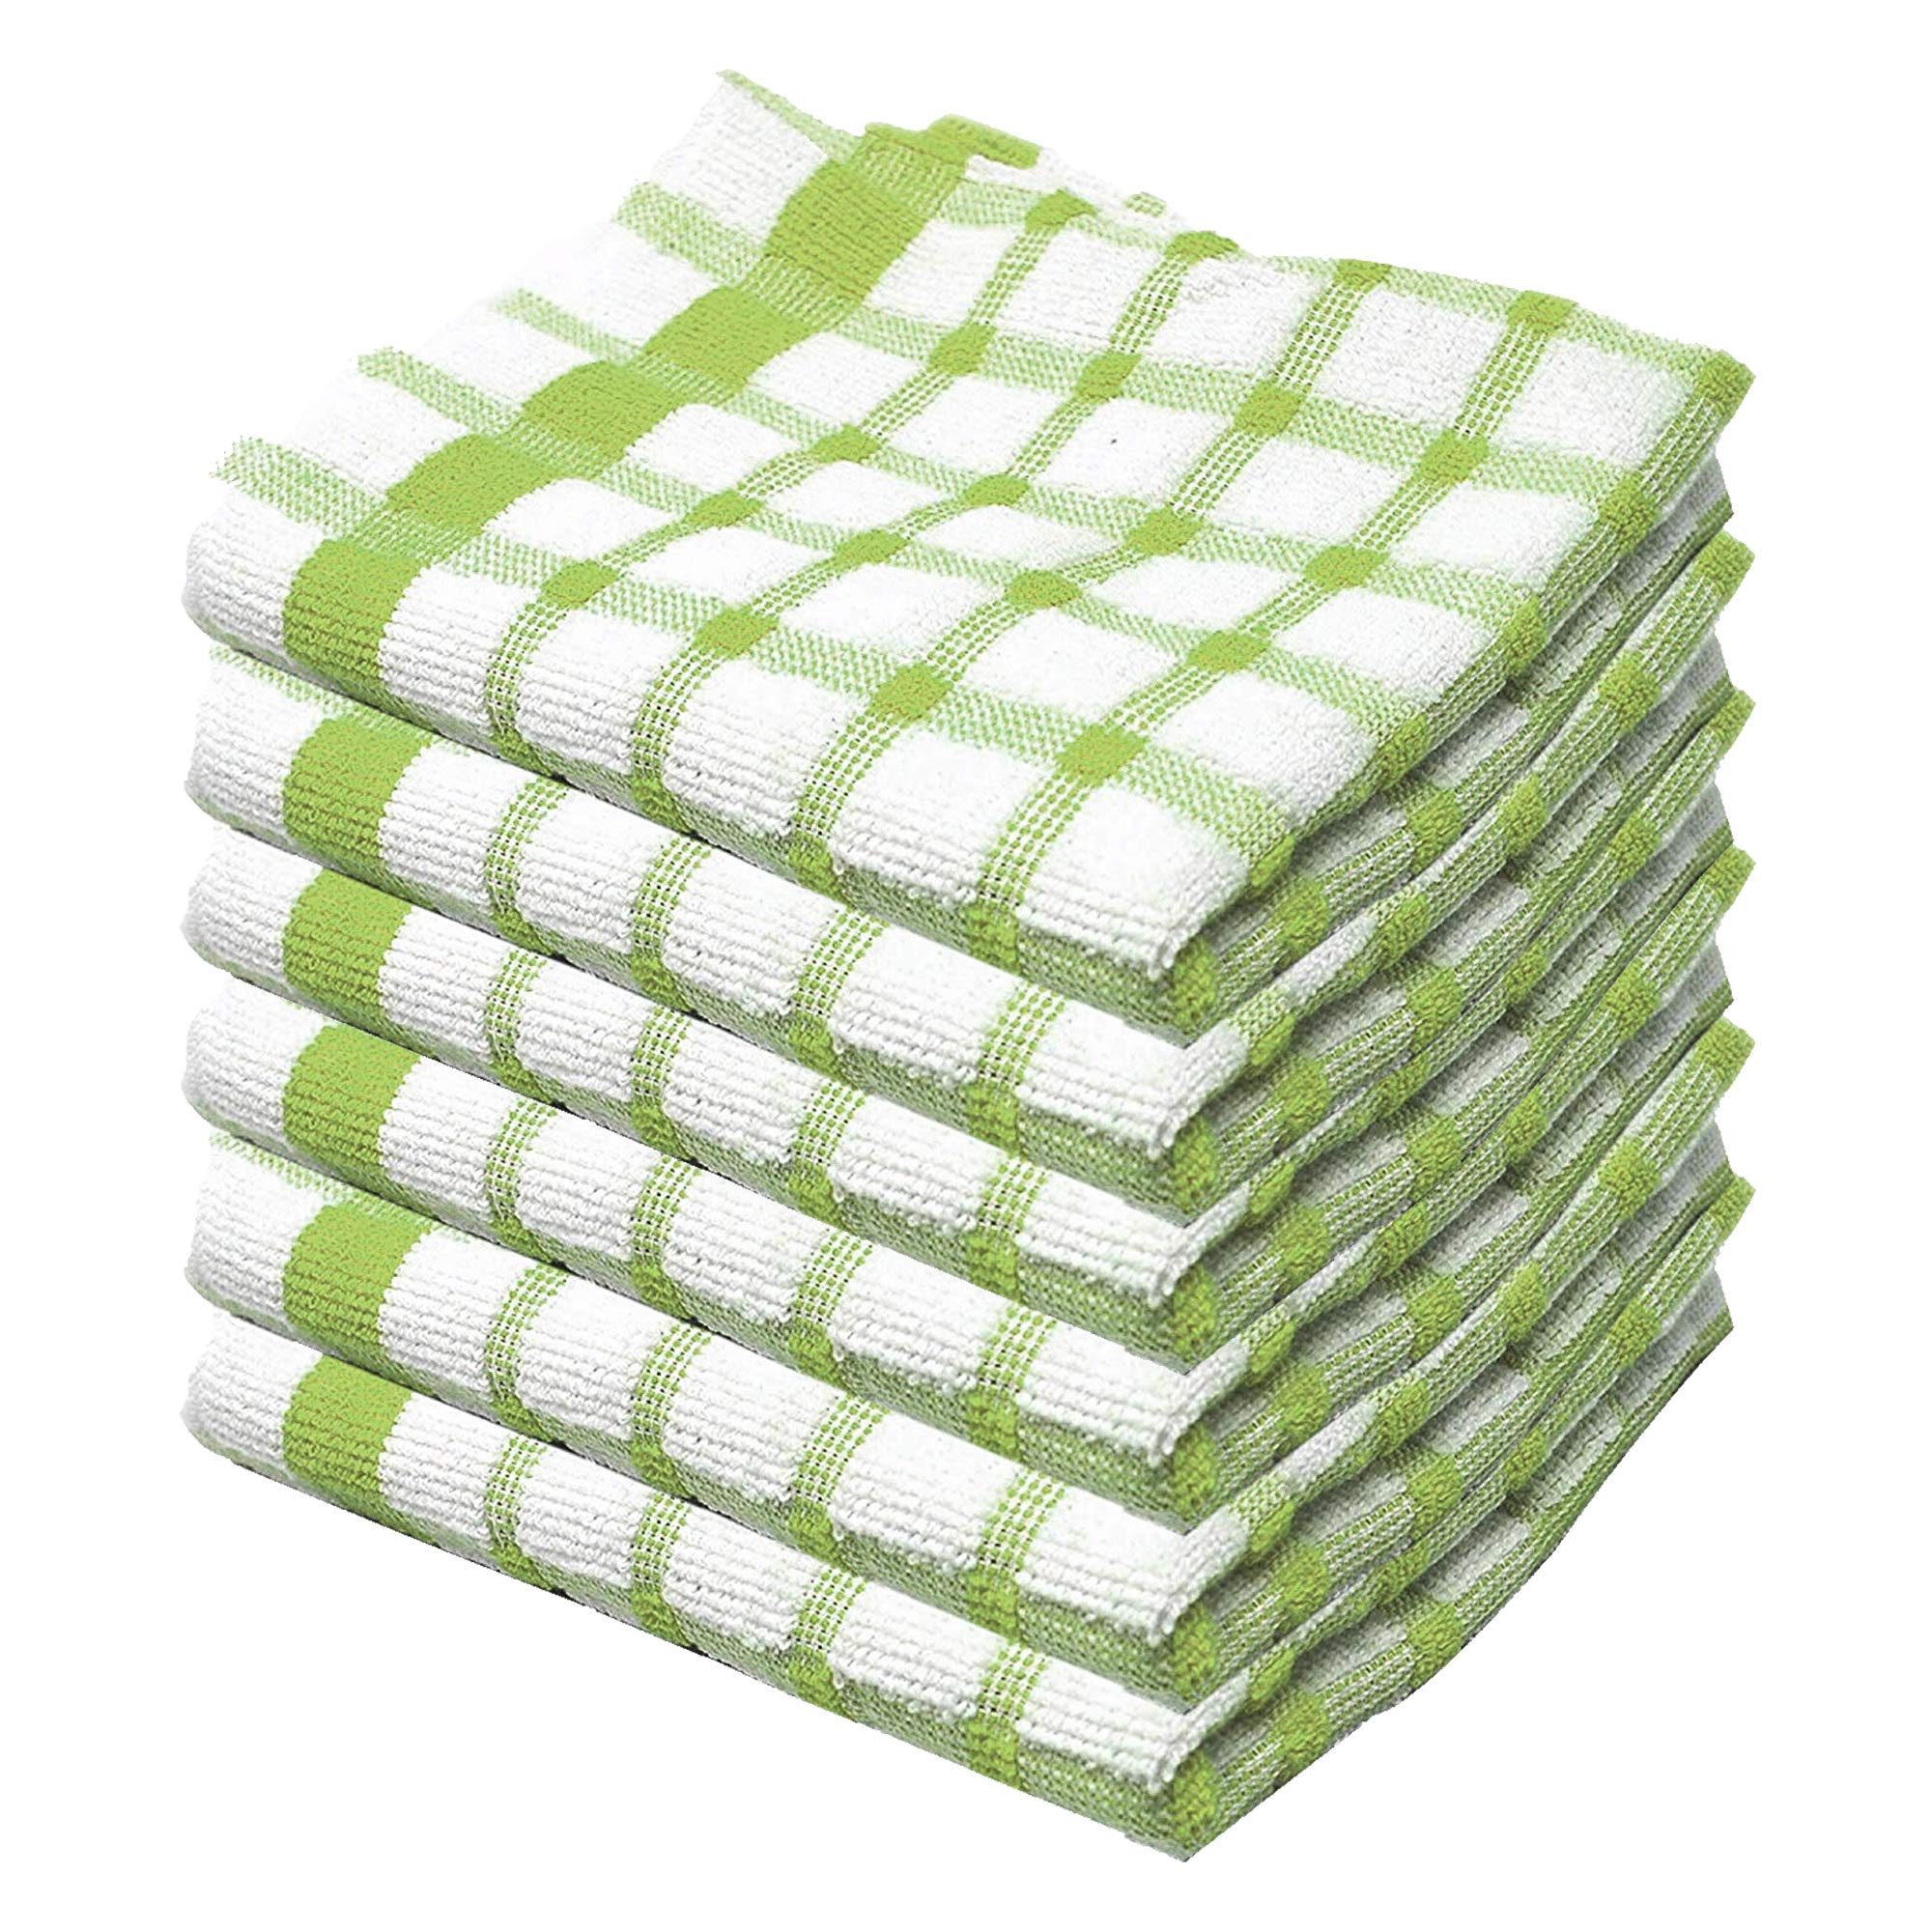 3 Pack 9 /& 12 40cm x 70cm 6 Wonderdry Soft Monocheck Jumbo Thick Kitchen Dish Cleaning Drying Cloth Pack of 3 KB Tradax 100/% Egyptian Cotton Terry Tea Towel